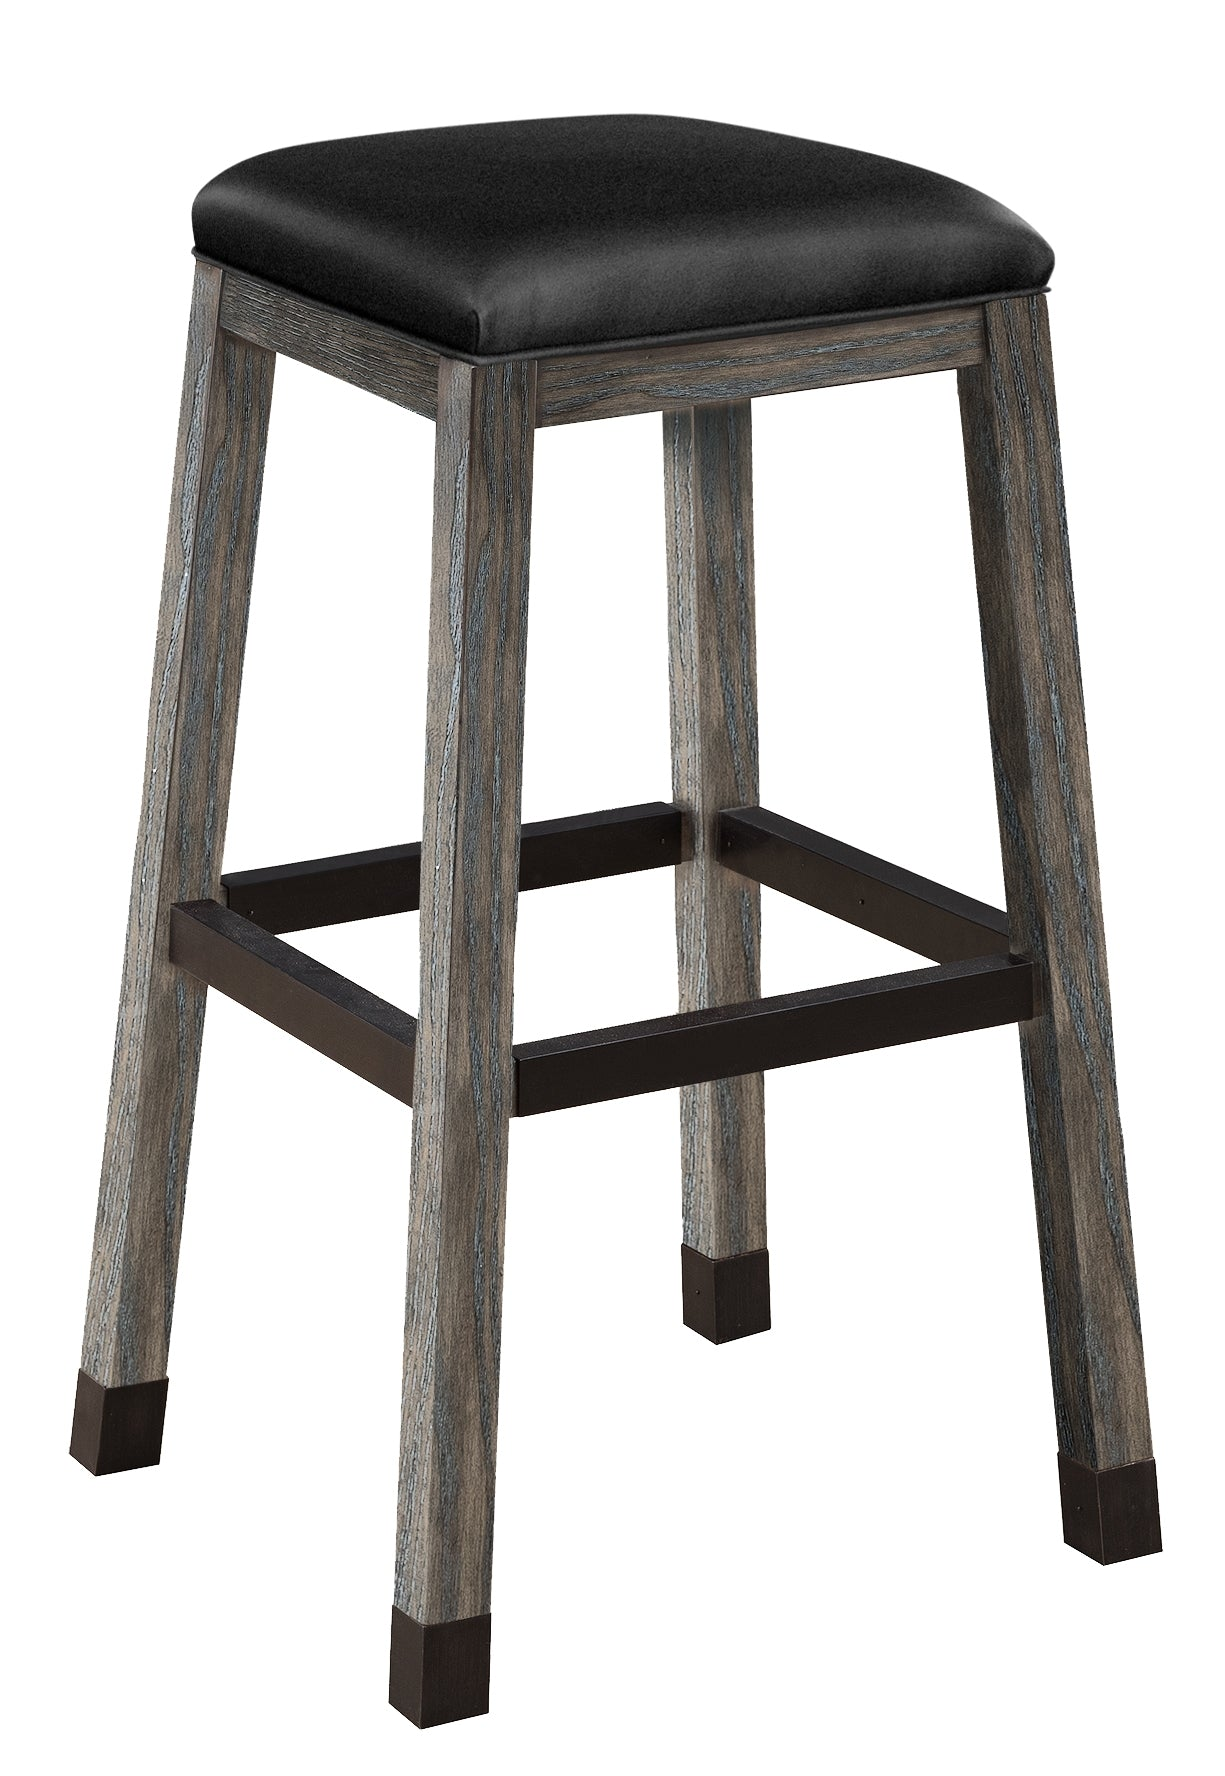 Magnificent Rustic Backless Barstool Ocoug Best Dining Table And Chair Ideas Images Ocougorg